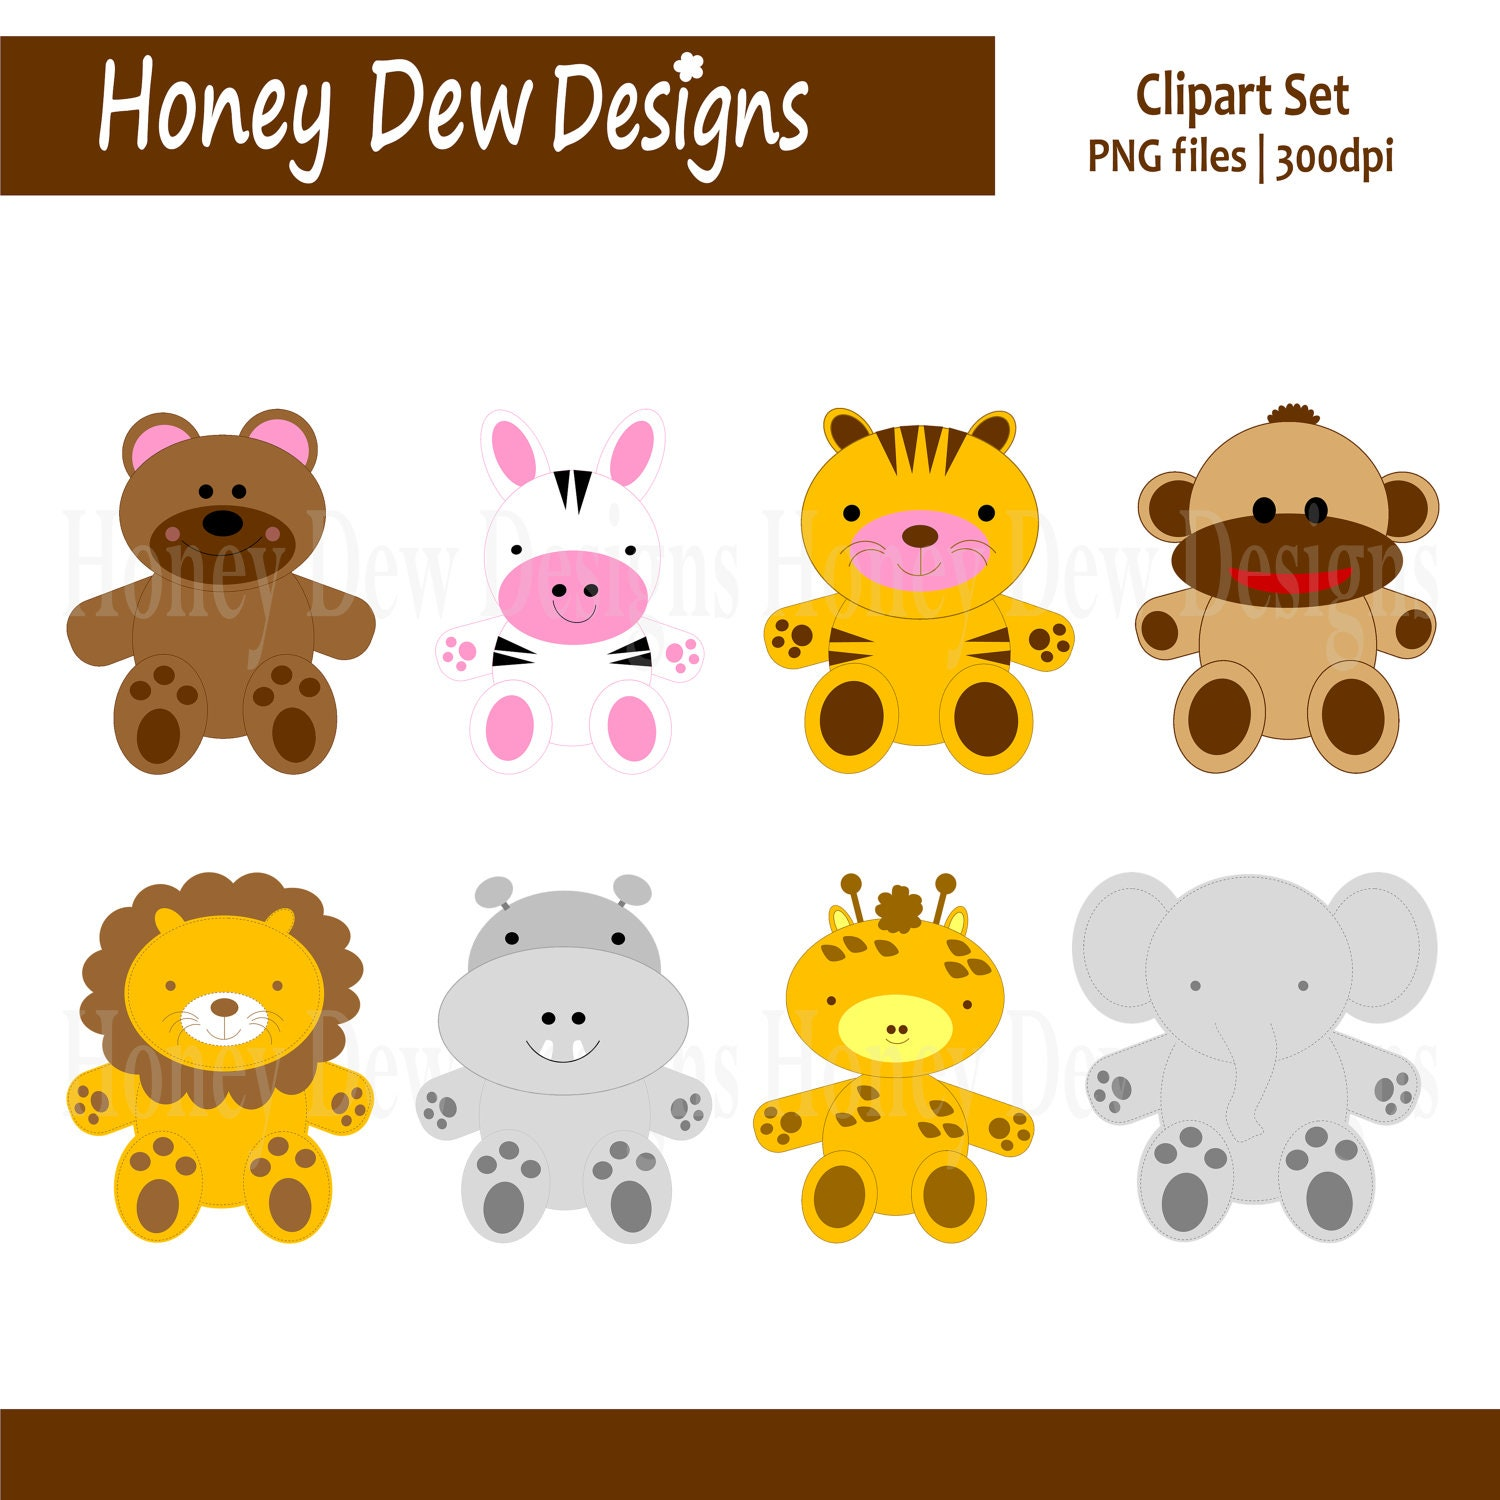 Clipart Package 063 Stuffed Animal Clipart by HoneyDewDesign